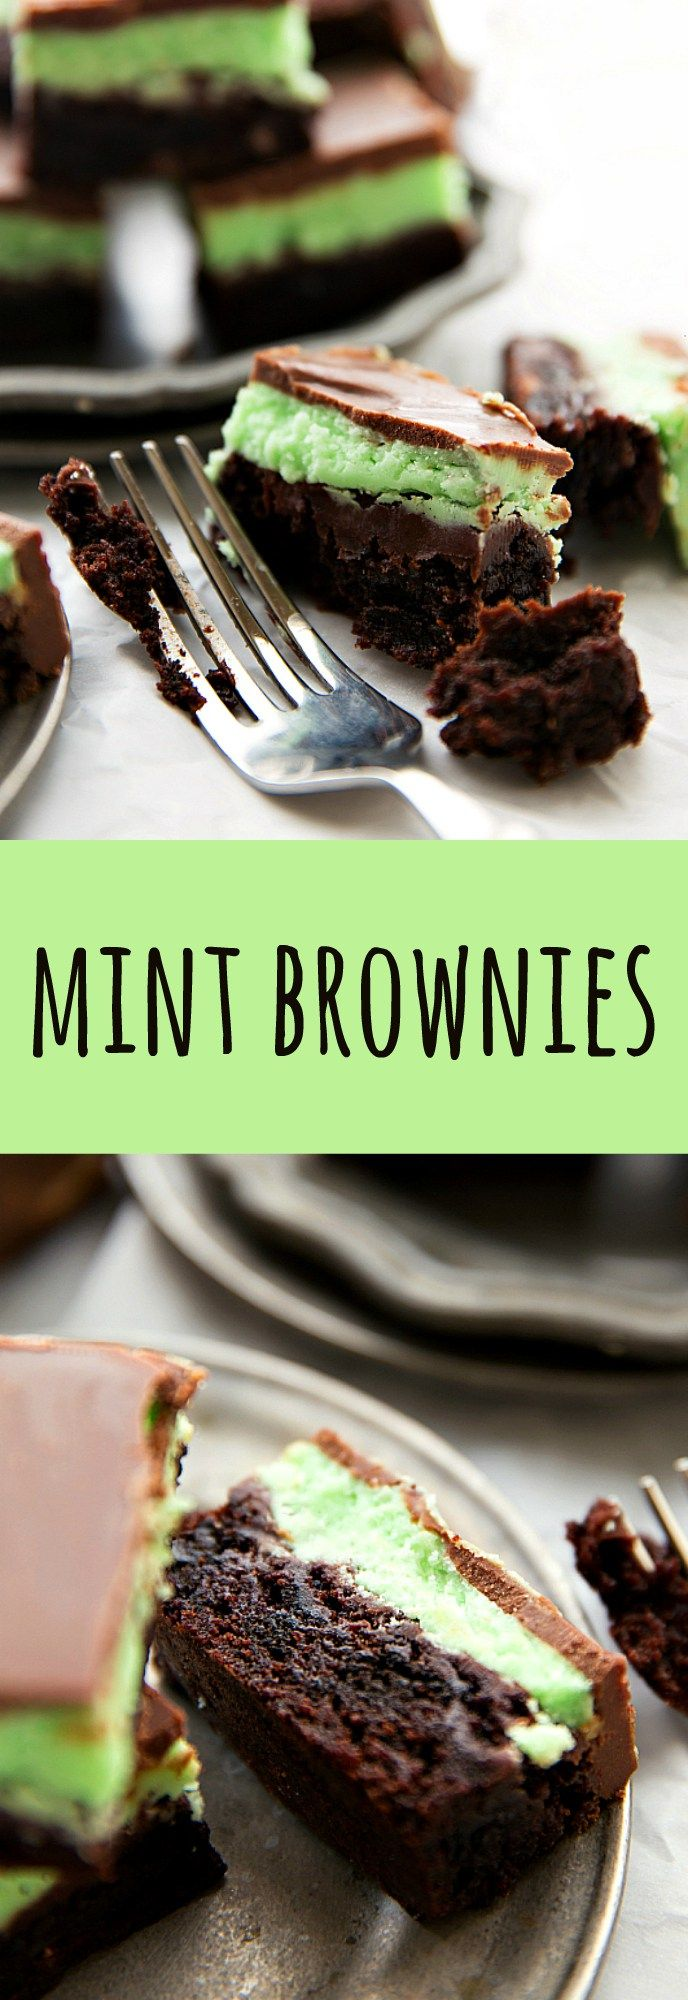 Easier (foolproof!) mint oreo brownies with a thick layer of frosting and a soft minty chocolate topping.